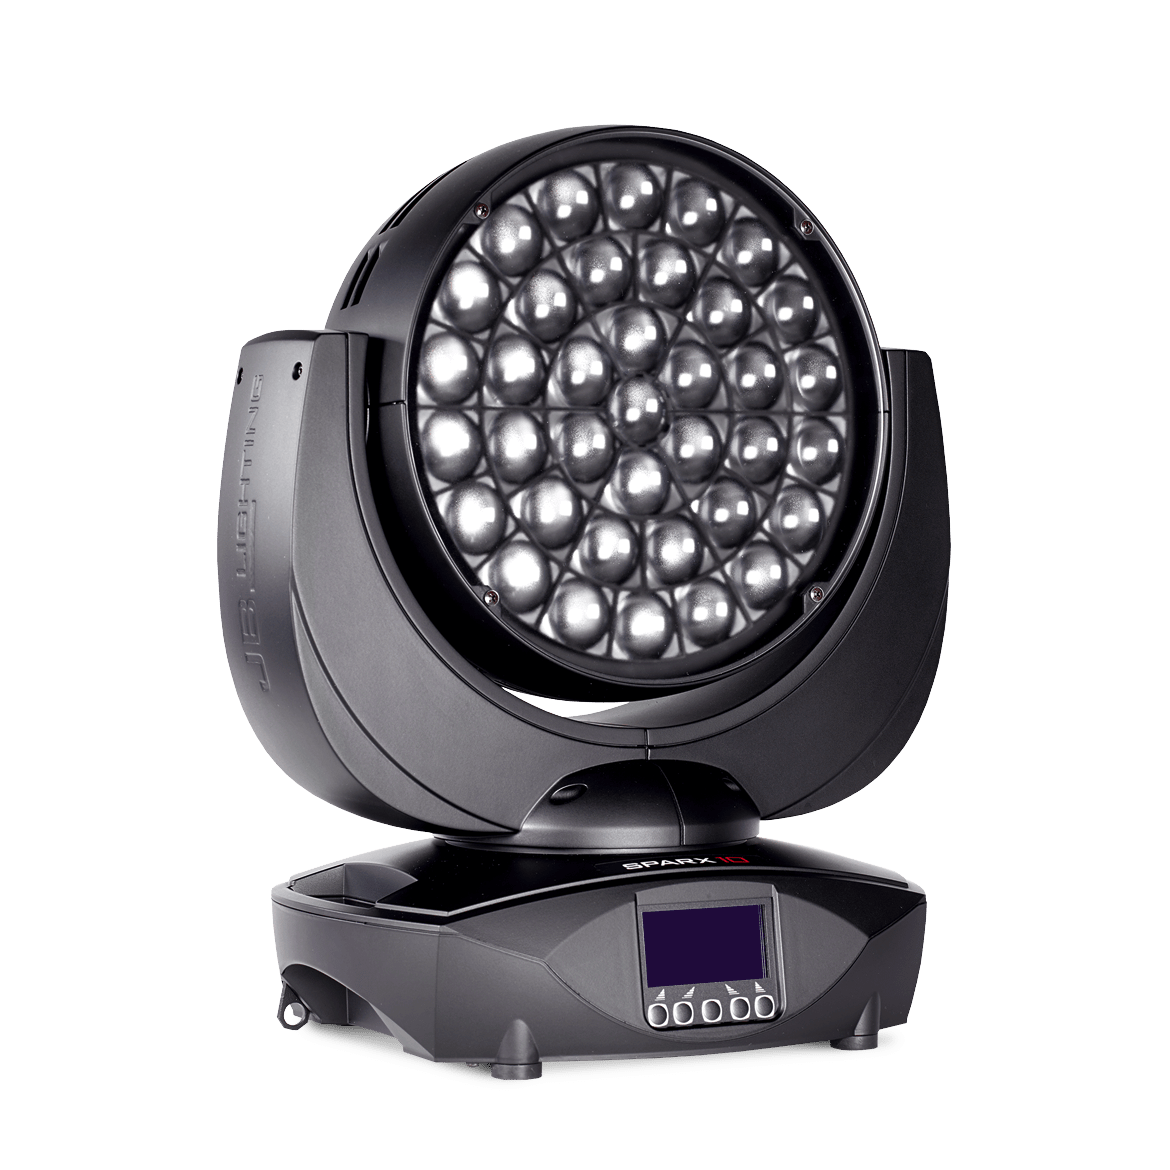 JB-Lighting Sparx 10 LED Wash Moving Head